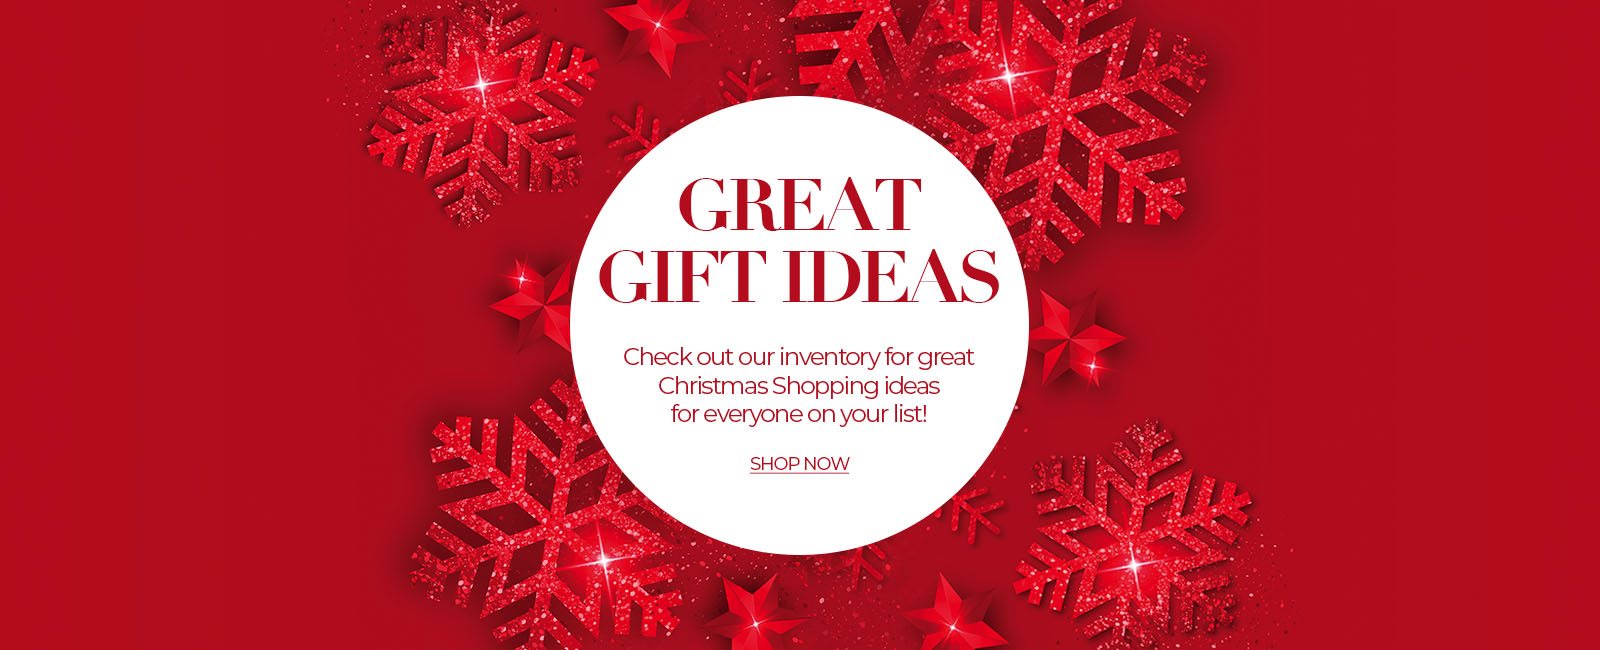 Great Gift Ideas banner for Shop Now link